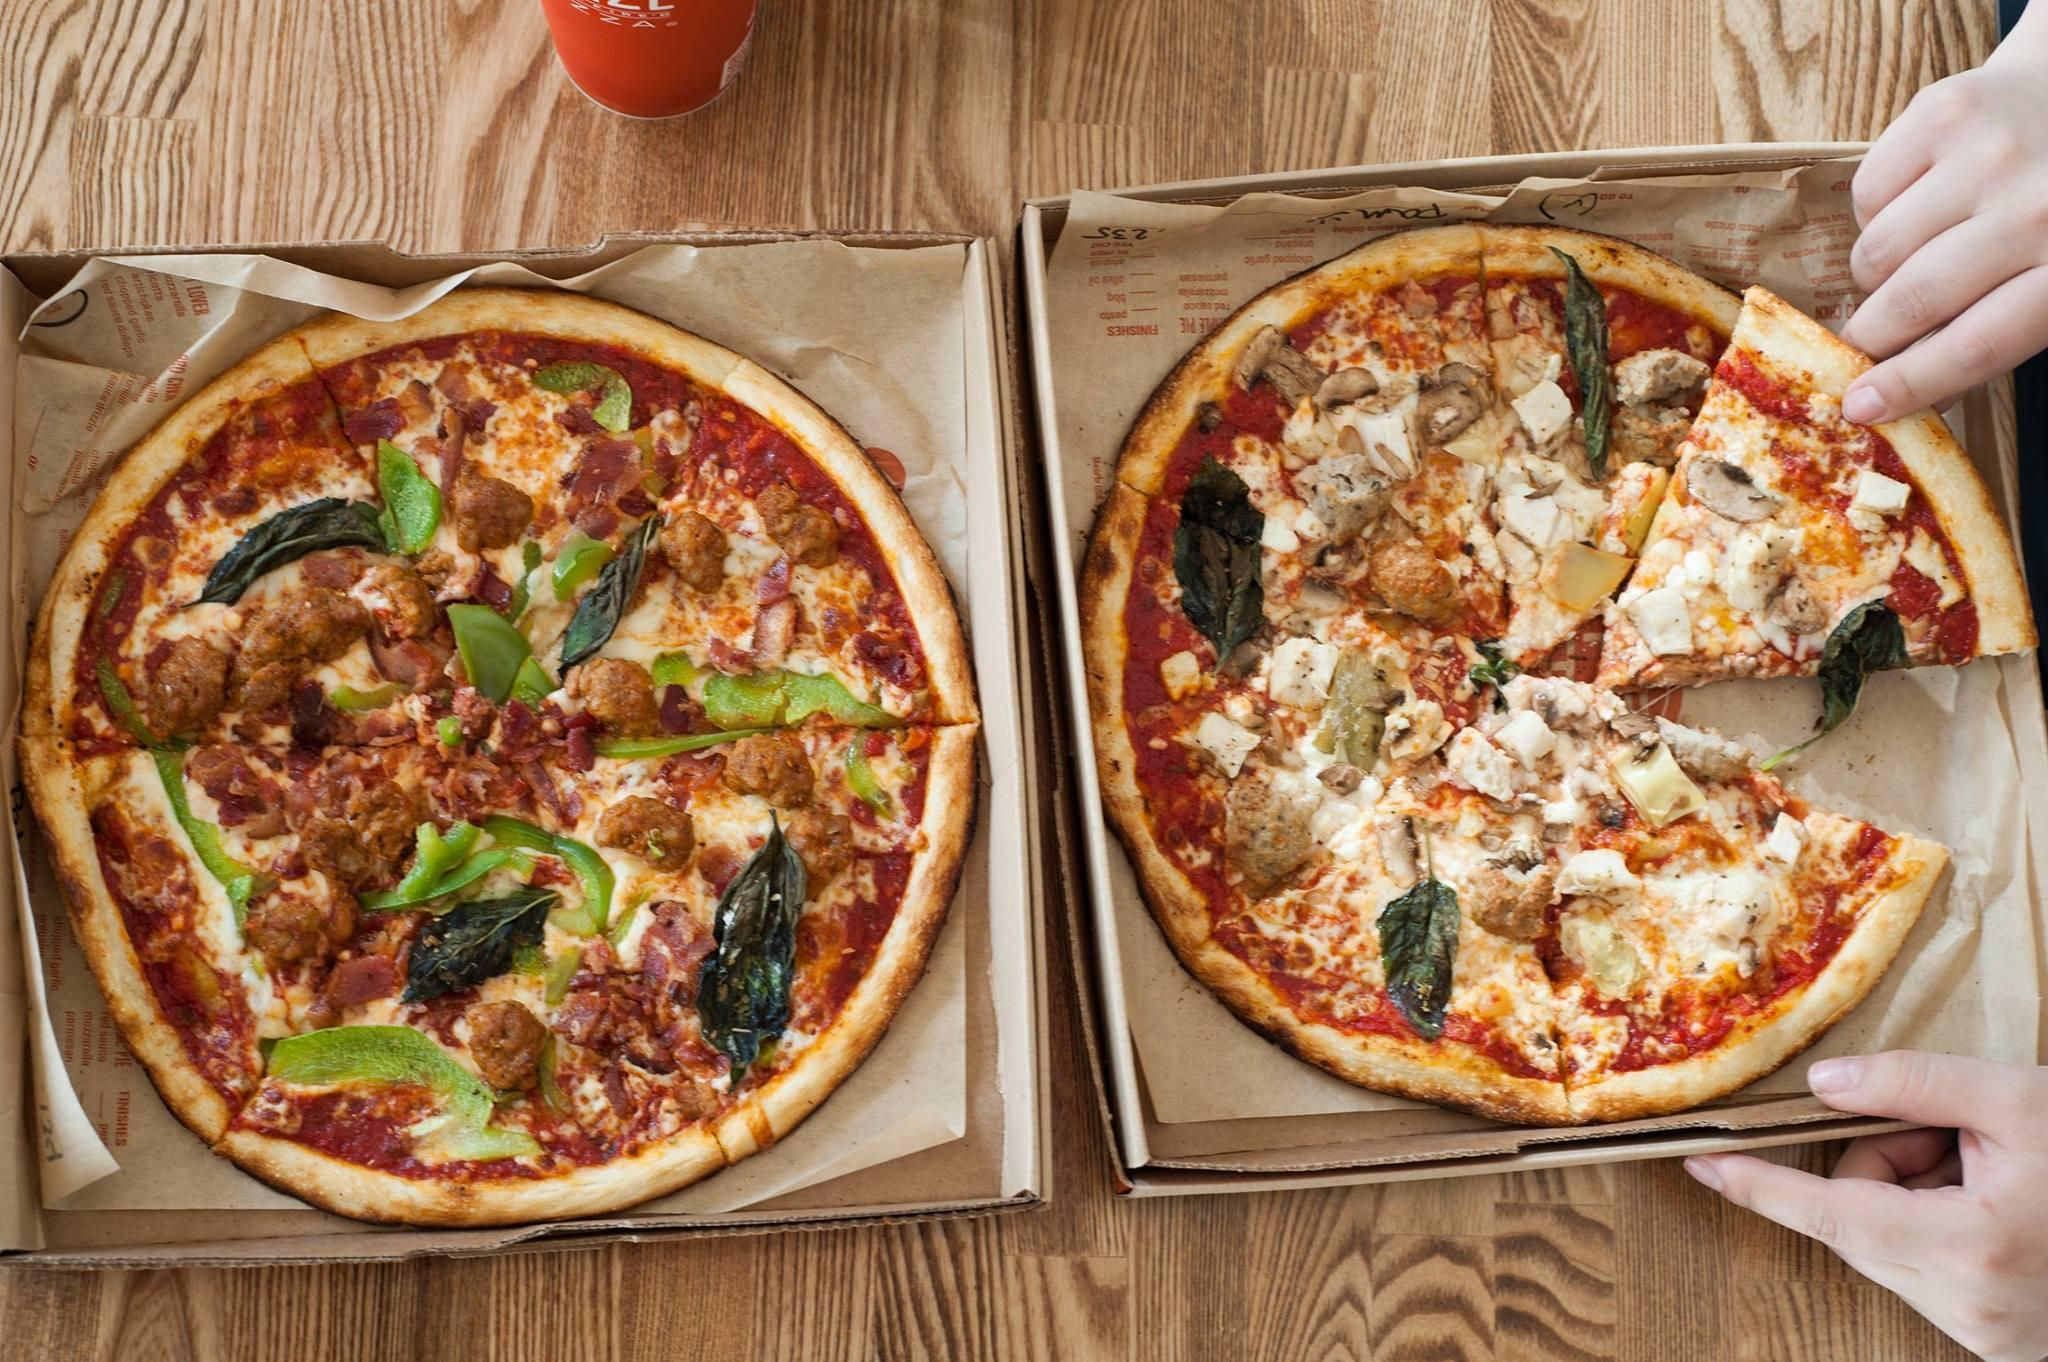 all ovens blazing in pizza wars